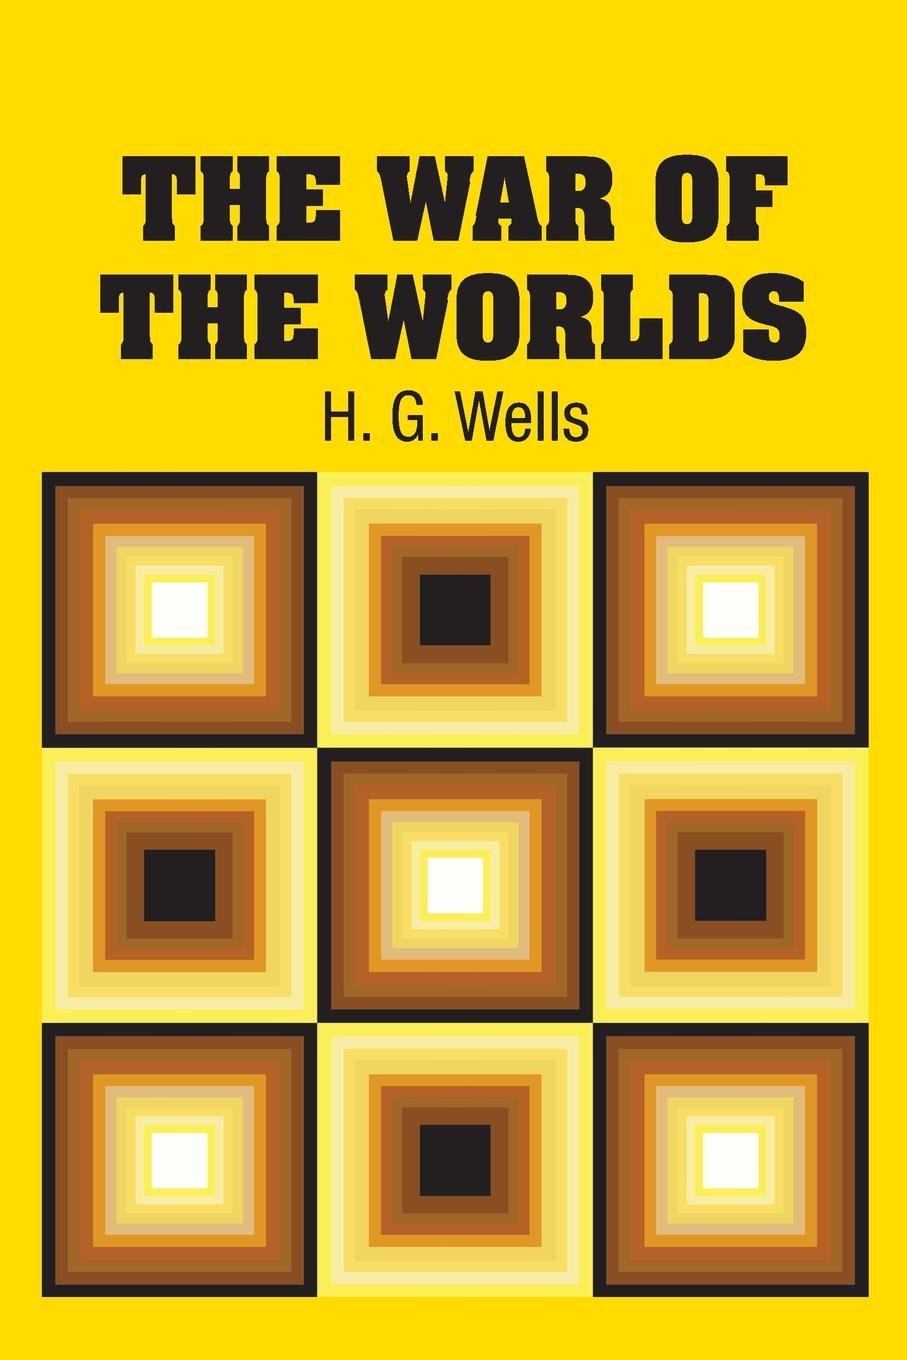 H. G. Wells The War of the Worlds h g wells the war of the worlds